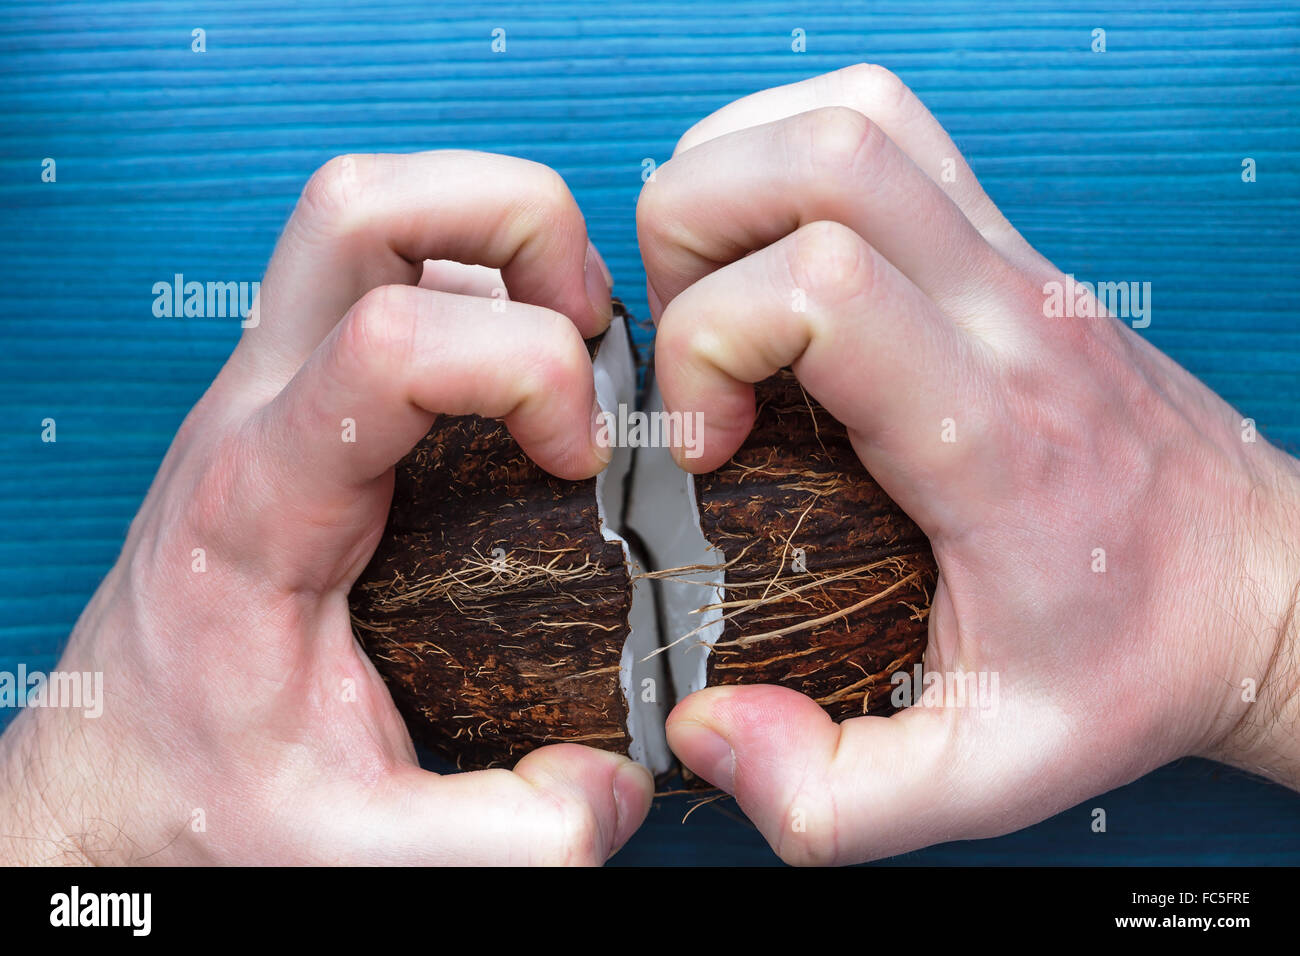 angry man breaks a coconut walnut into two halves - Stock Image